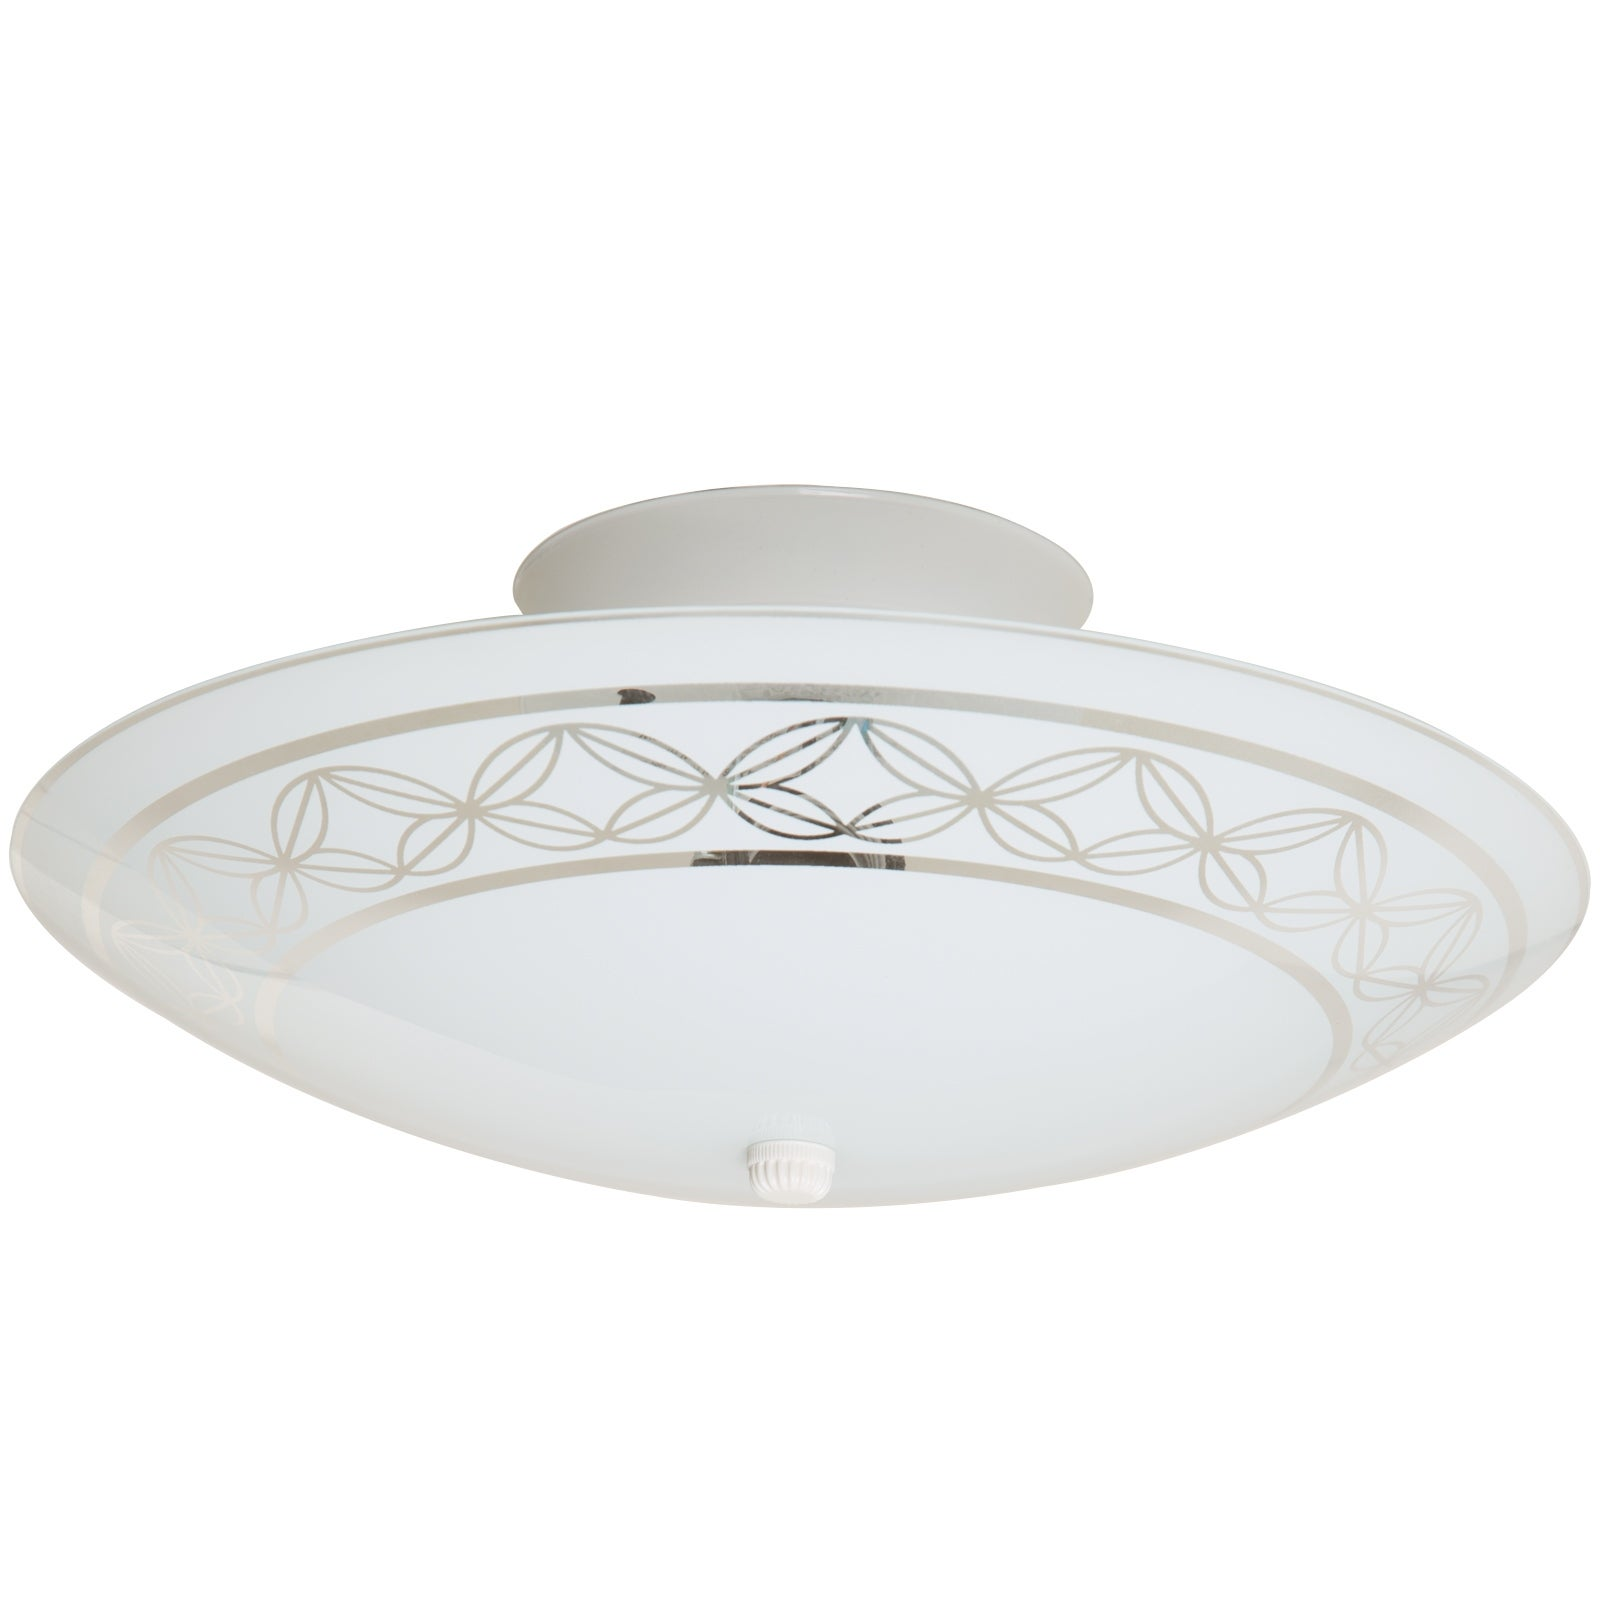 Boston Harbor F98wh02 1204h3l Semi Flush Mount Ceiling Light White Free Shipping On Orders Over 45 13132633